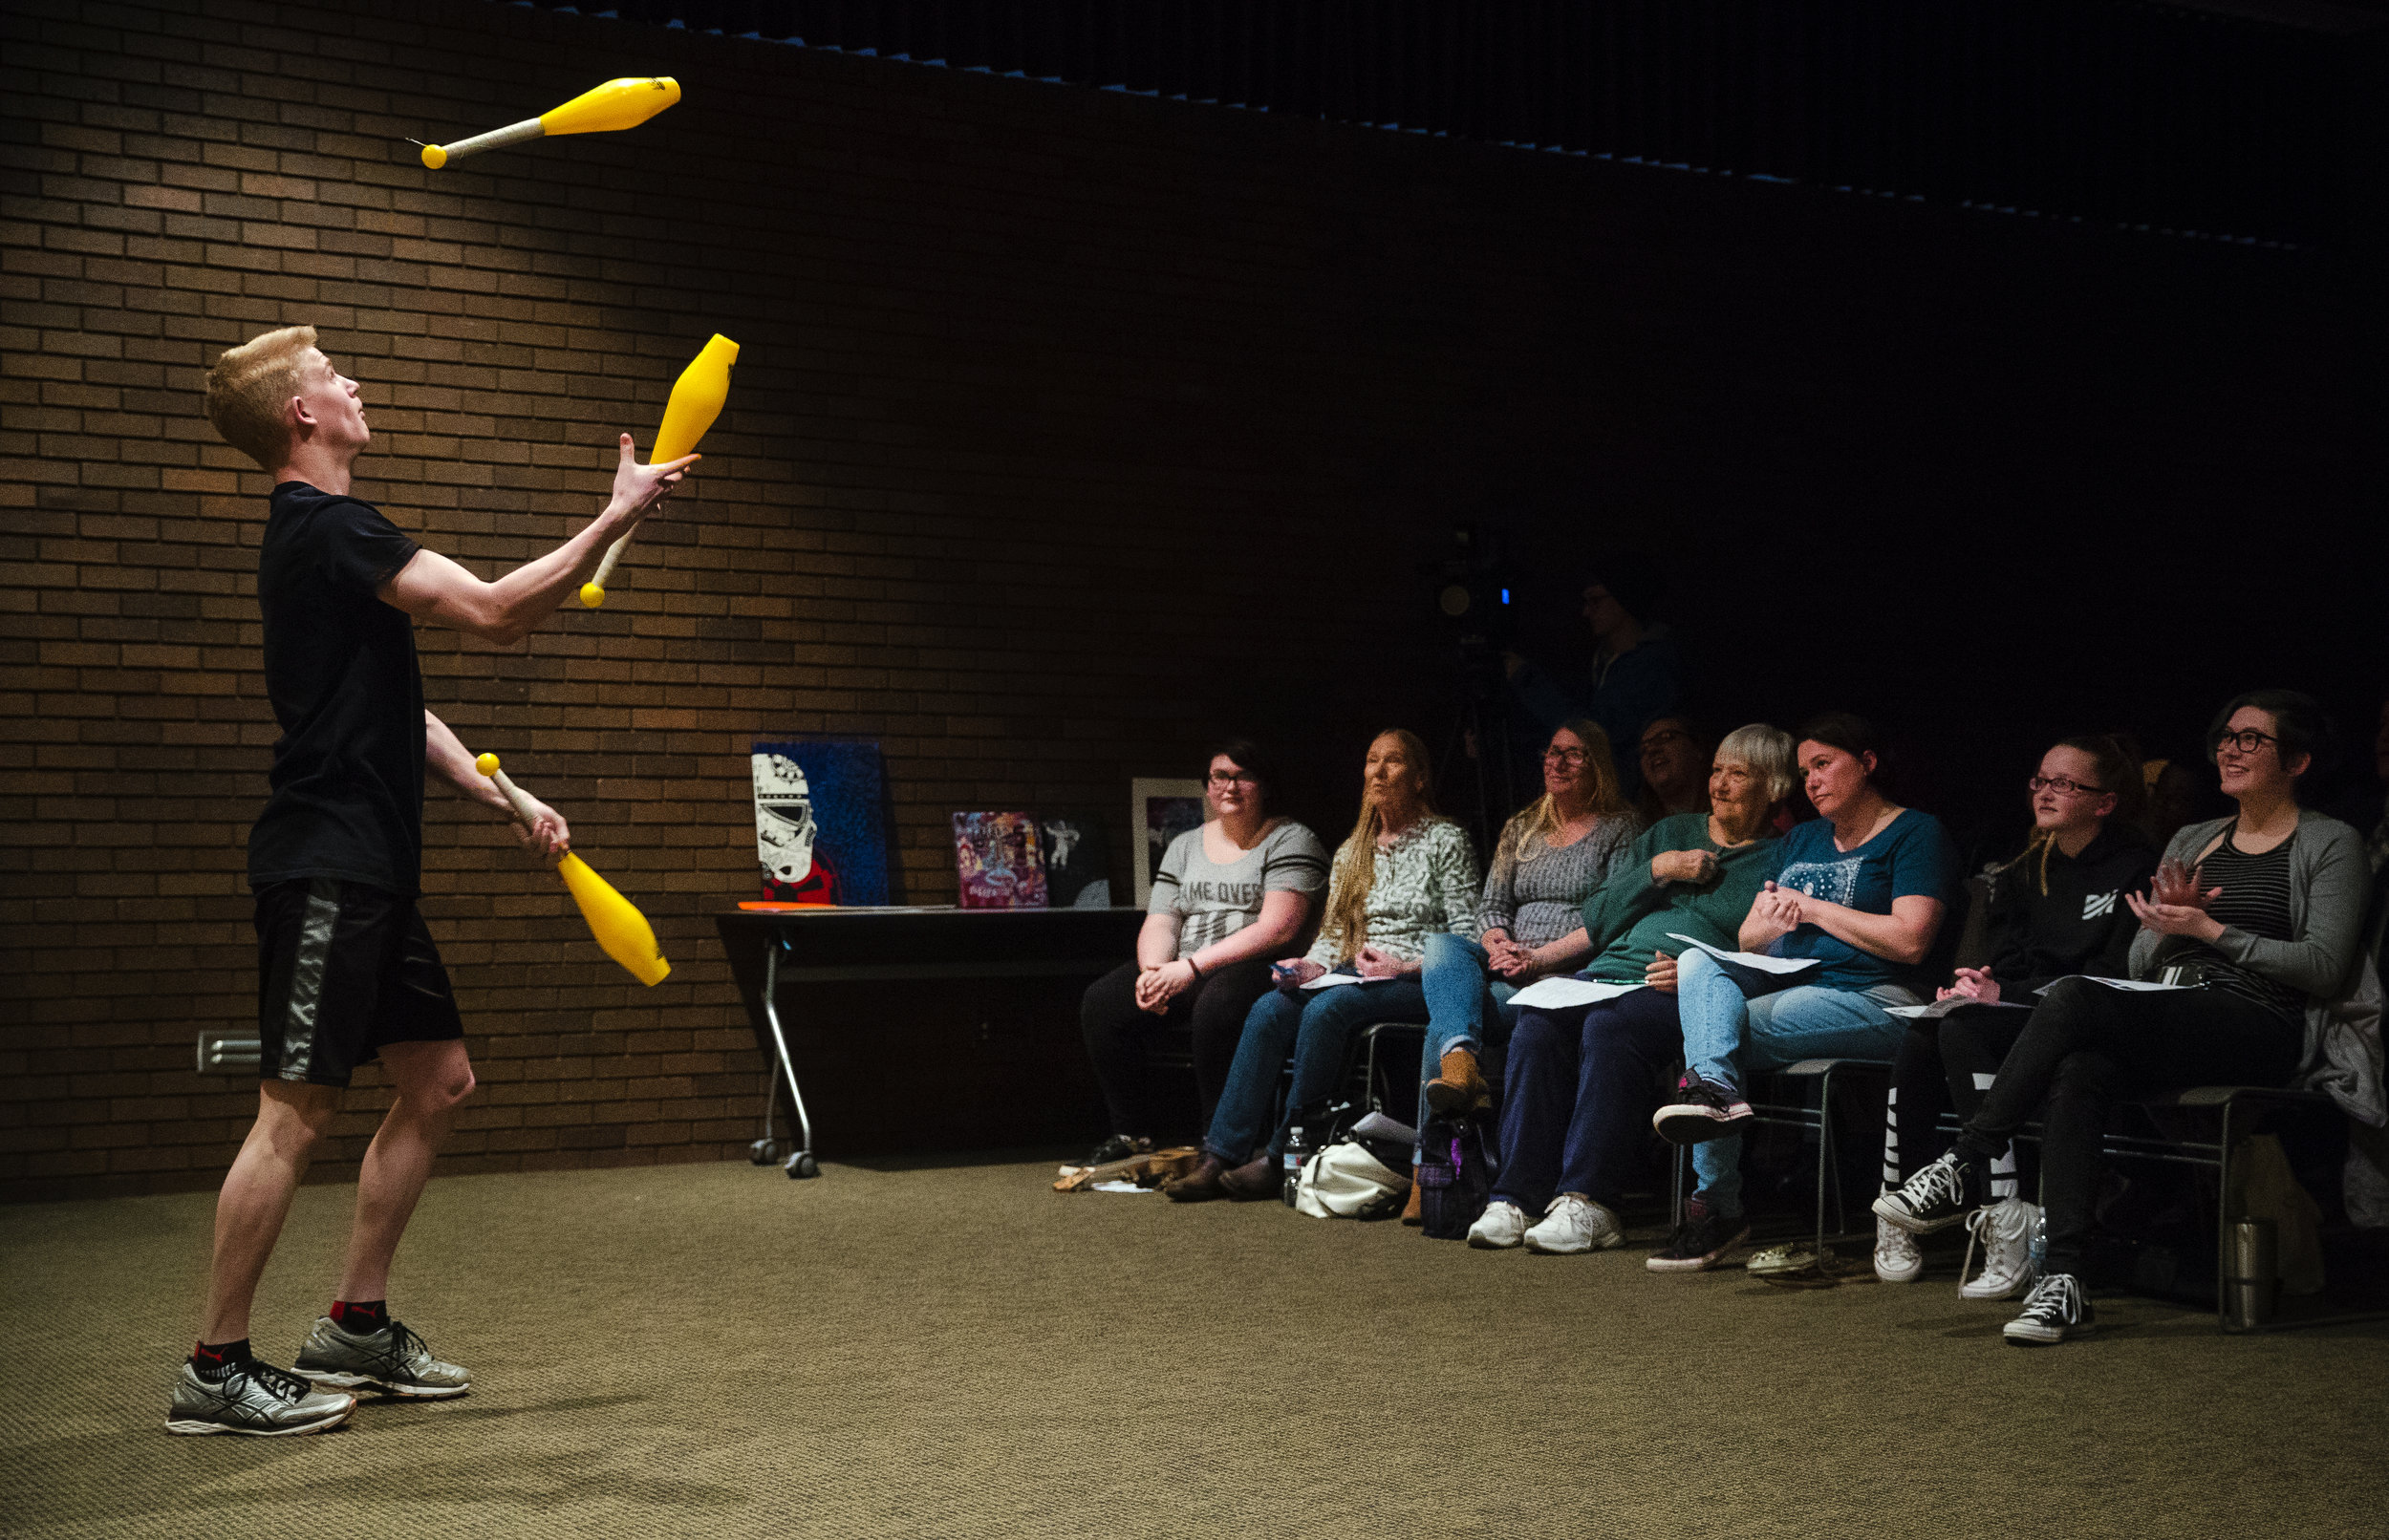 Colton Schmidt of Sacred Heart-Griffin juggles during the inaugural Mayor's Youth Council All City Talent Show at Lincoln Library Wednesday, April 18, 2018. Colin Gwillim of Lutheran High School won first place in the Visual Art category and Southeast High School's Wynton Gage won first place in the performance category. [Ted Schurter/The State Journal-Register]